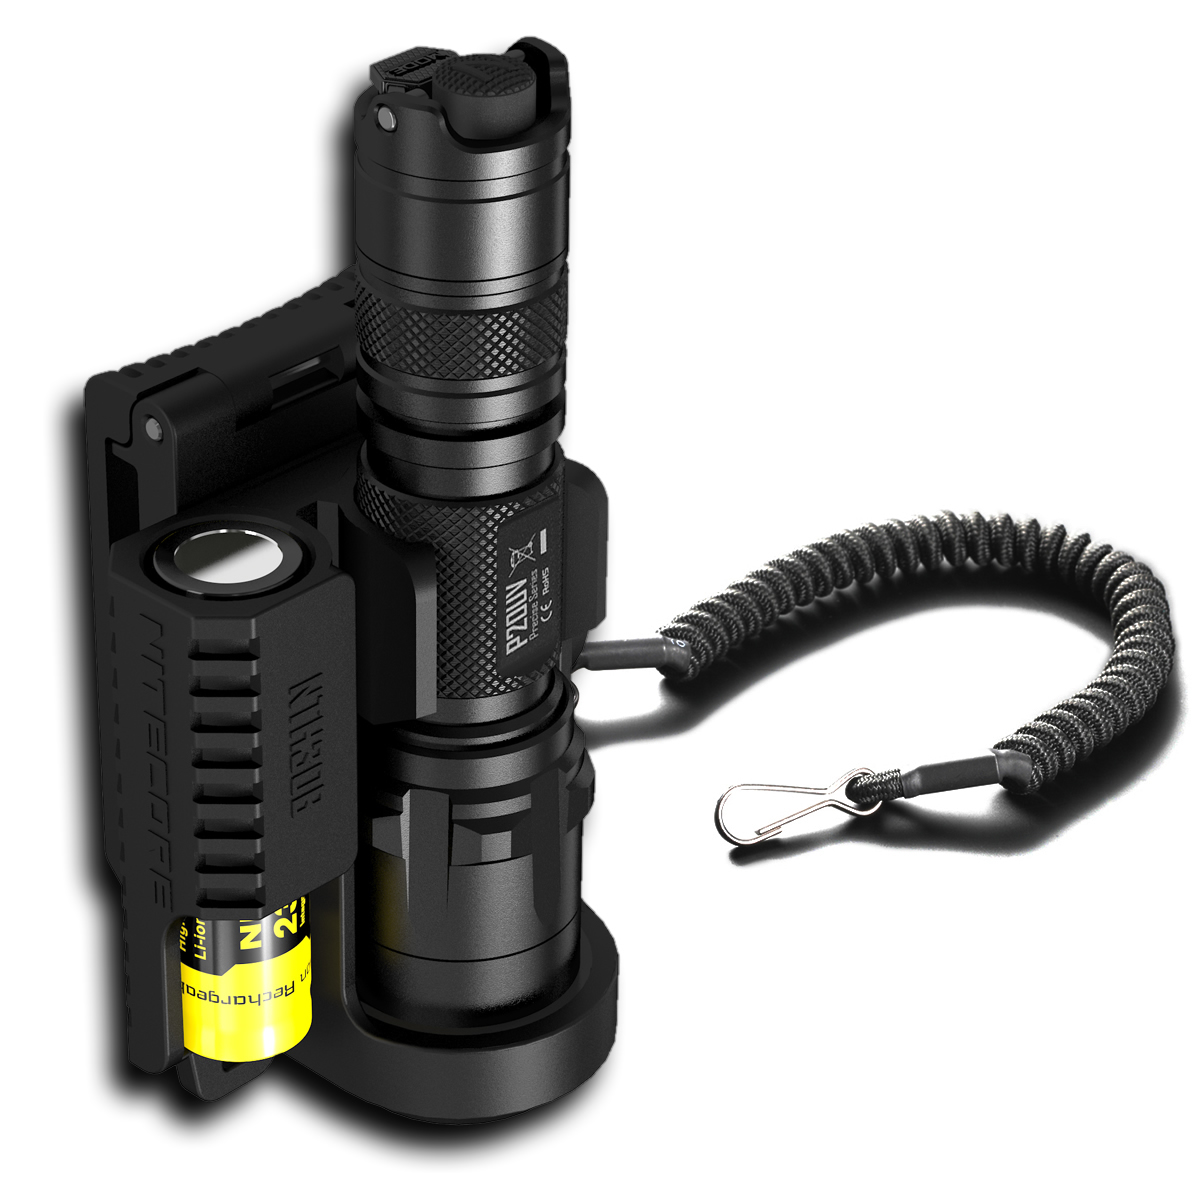 NITECORE P20 P20UV Tactical LED Flashlight Waterproof Outdoor Camping Hunting Portable with NTL10+NTH30B+2300mah Battery Package nitecore mt10c portable tactical flashlight cree xm l2 u2 led 920 lumens red light illumination waterproof with imr18350 battery